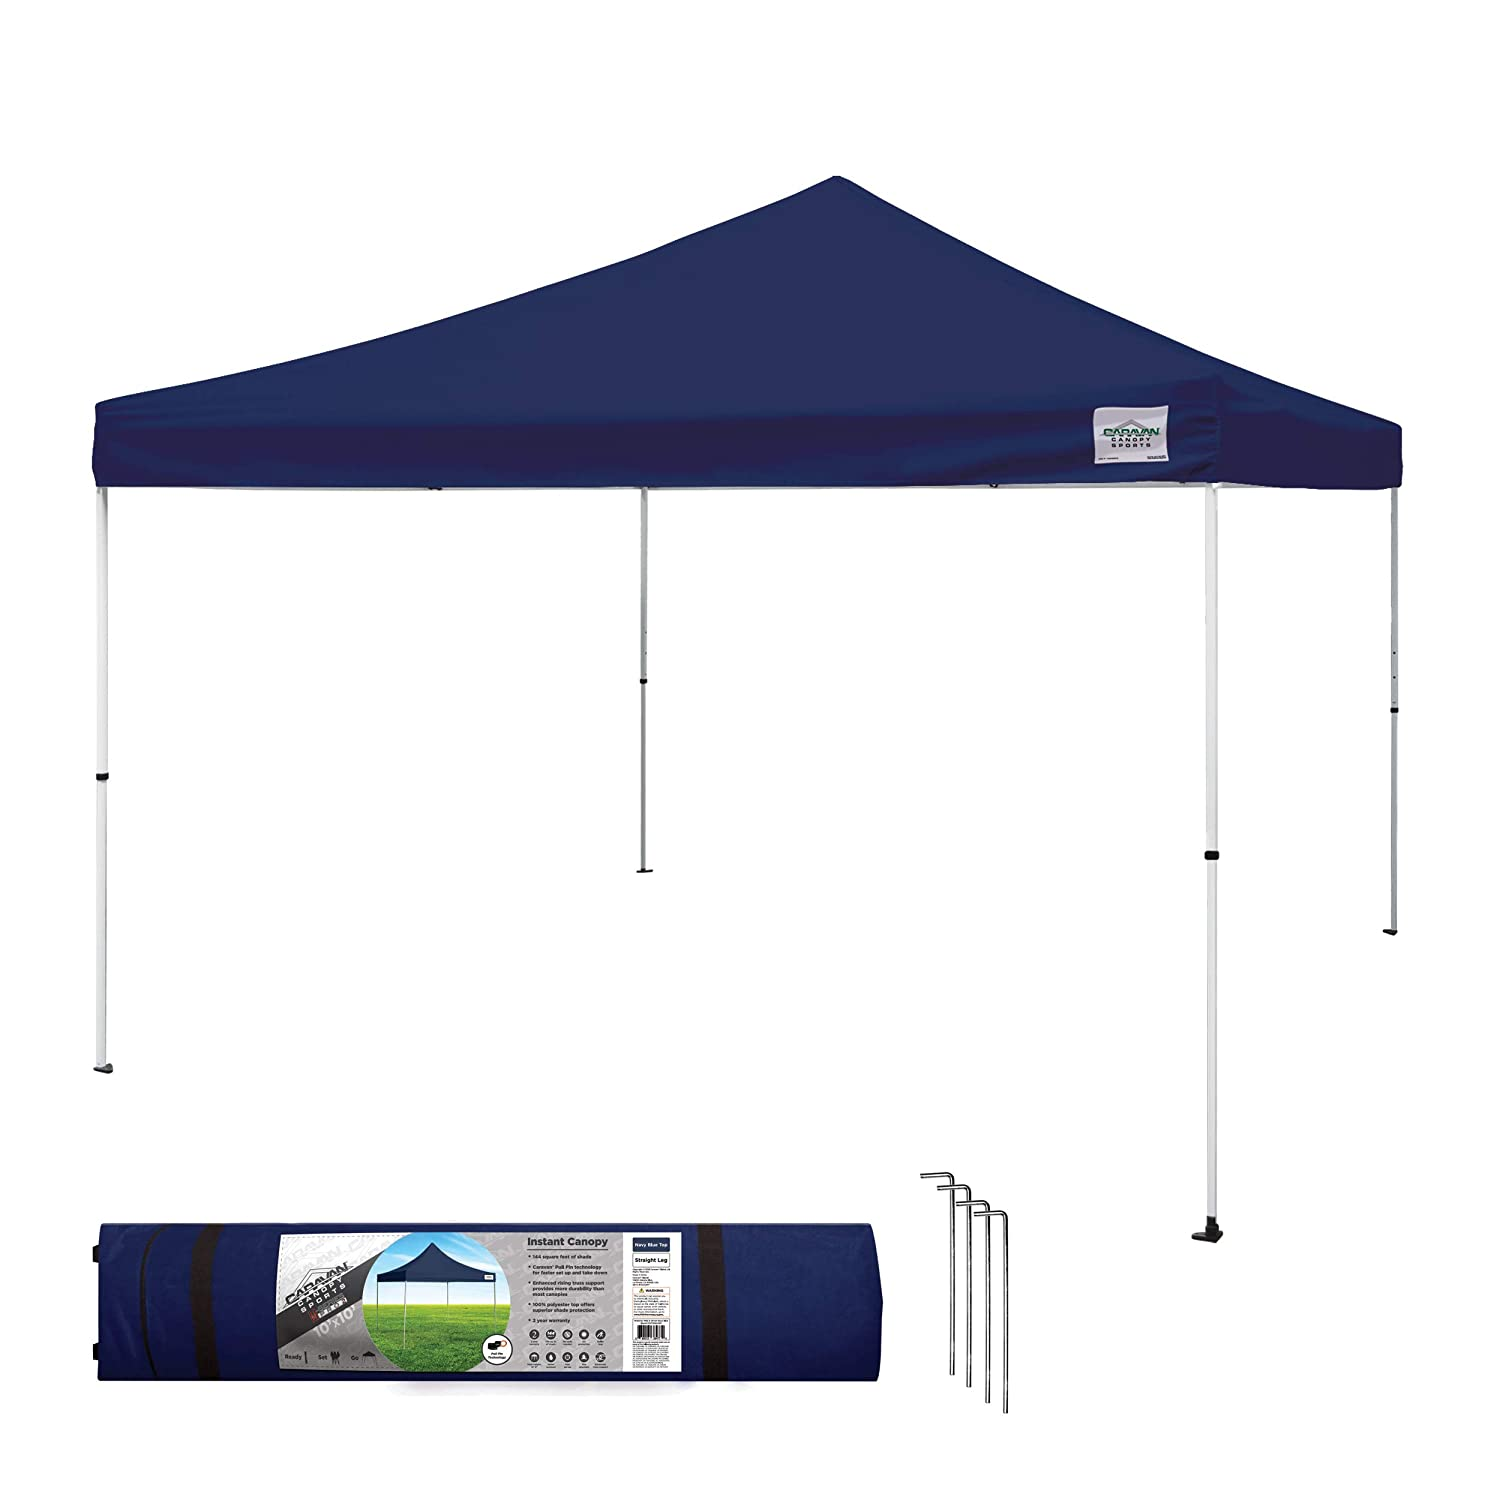 Amazon.com  Caravan Canopy M-Series 2 Pro 12 X 12 Foot Straight Leg Canopy Kit Navy Blue  Garden u0026 Outdoor  sc 1 st  Amazon.com & Amazon.com : Caravan Canopy M-Series 2 Pro 12 X 12 Foot Straight Leg ...